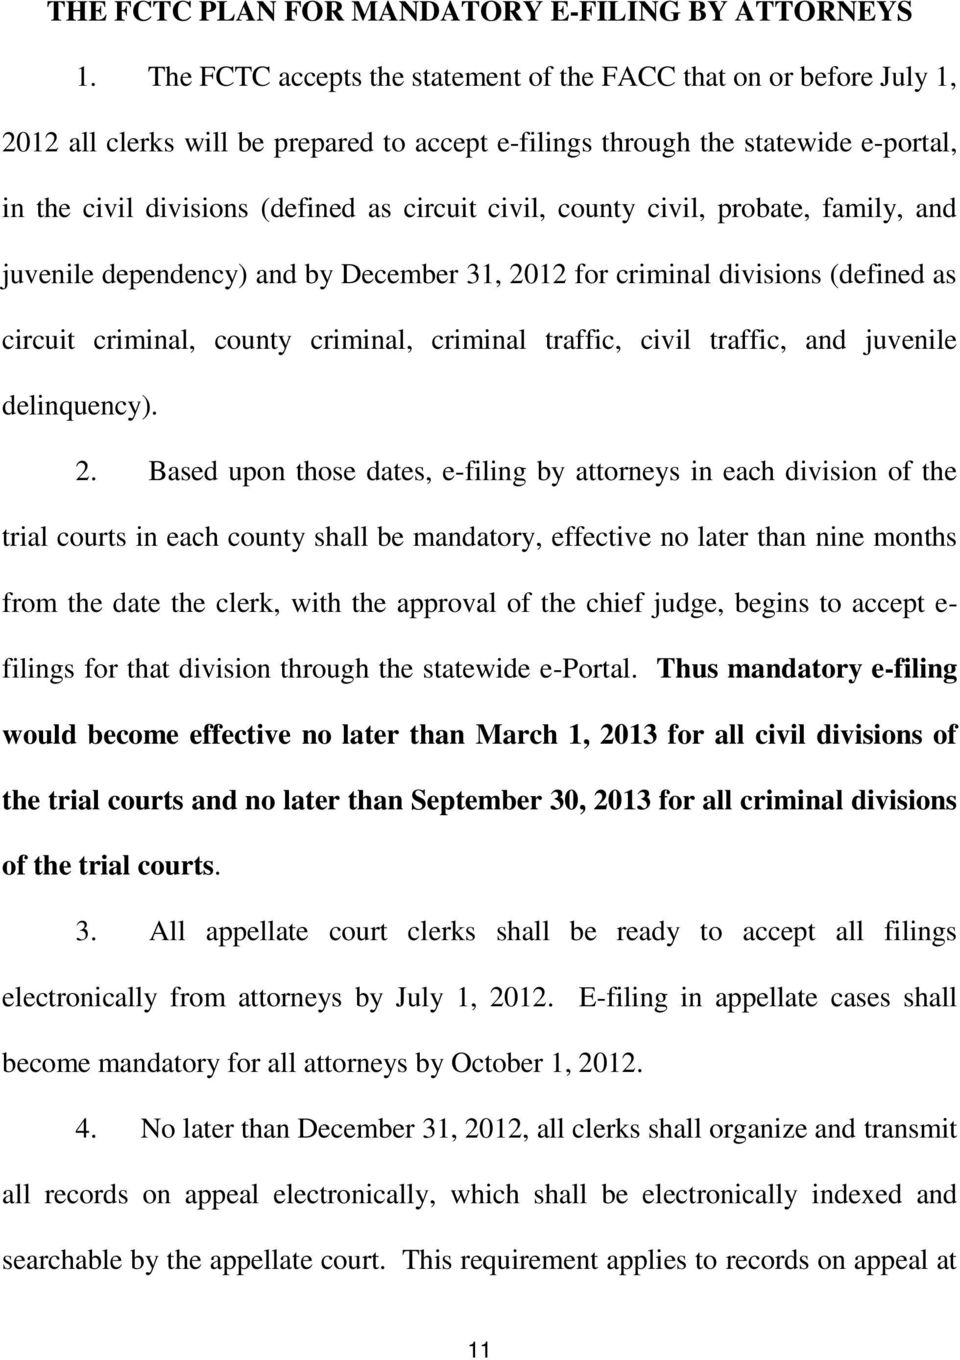 civil, county civil, probate, family, and juvenile dependency) and by December 31, 2012 for criminal divisions (defined as circuit criminal, county criminal, criminal traffic, civil traffic, and